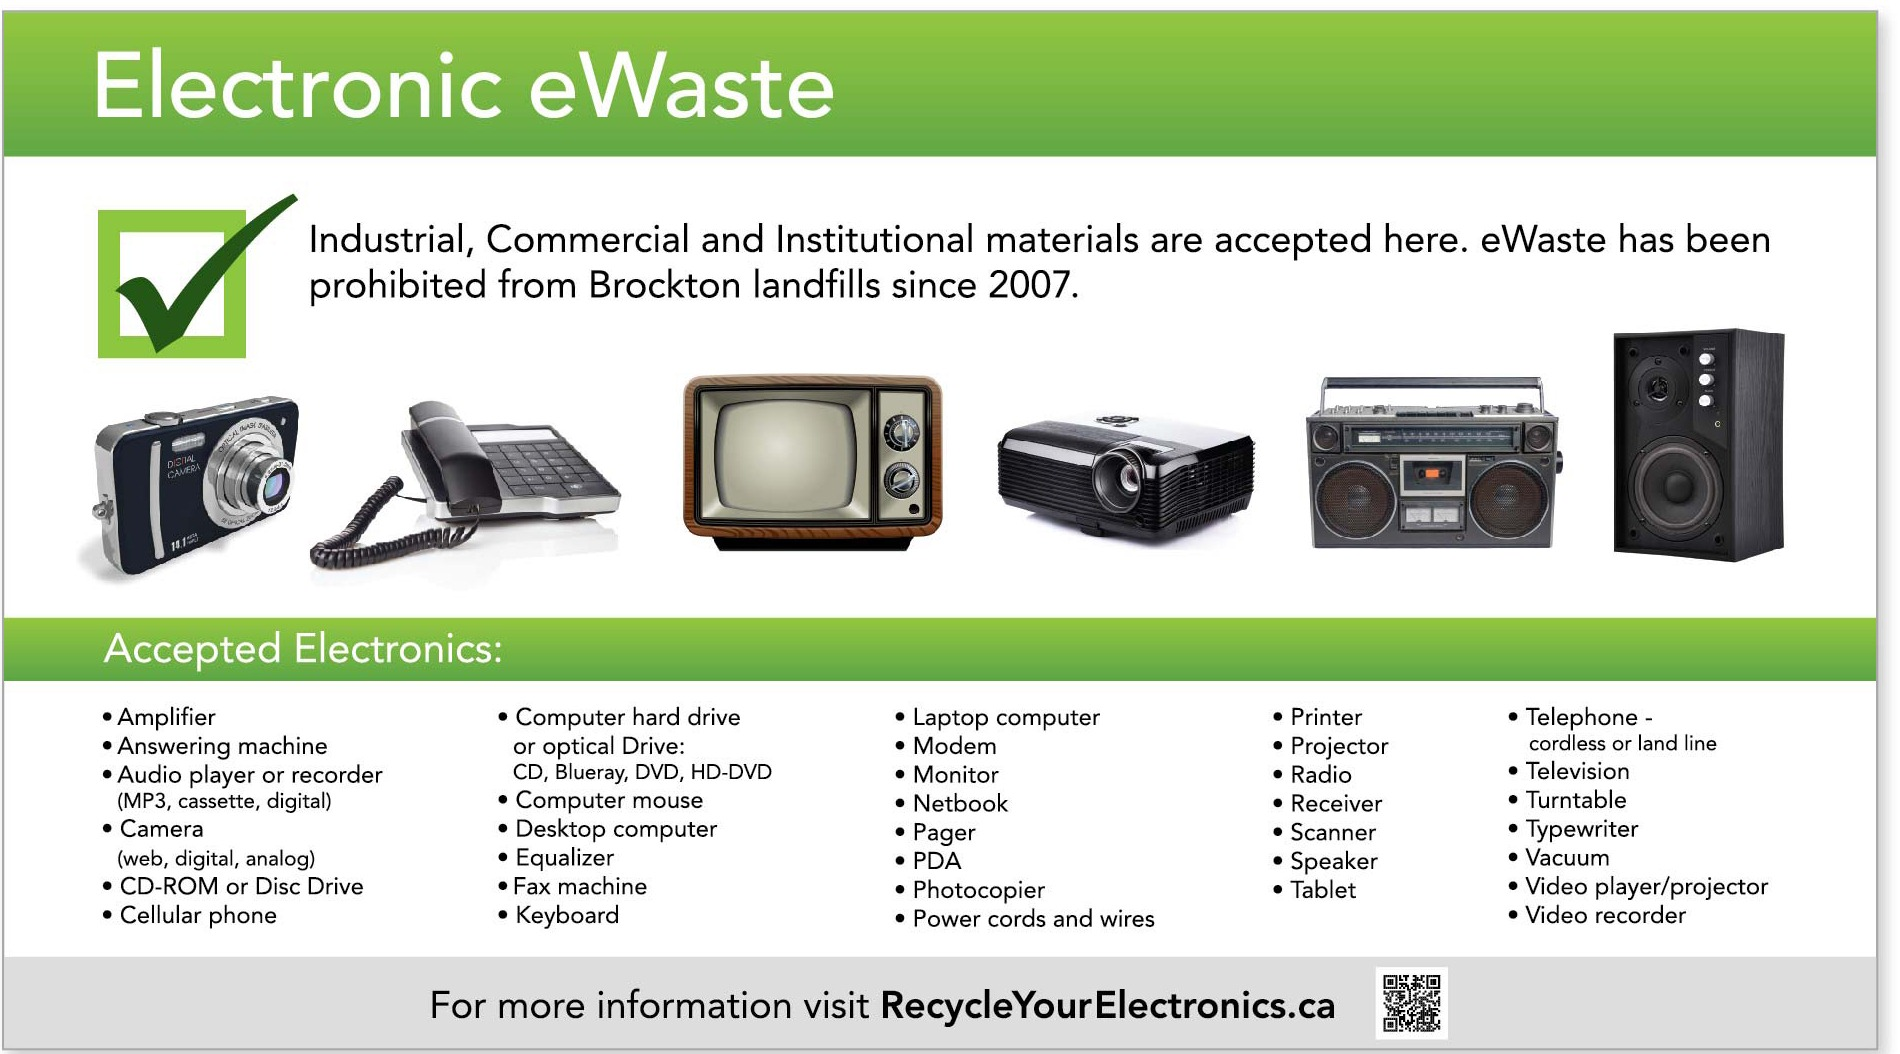 Accepted items for eWaste recycling